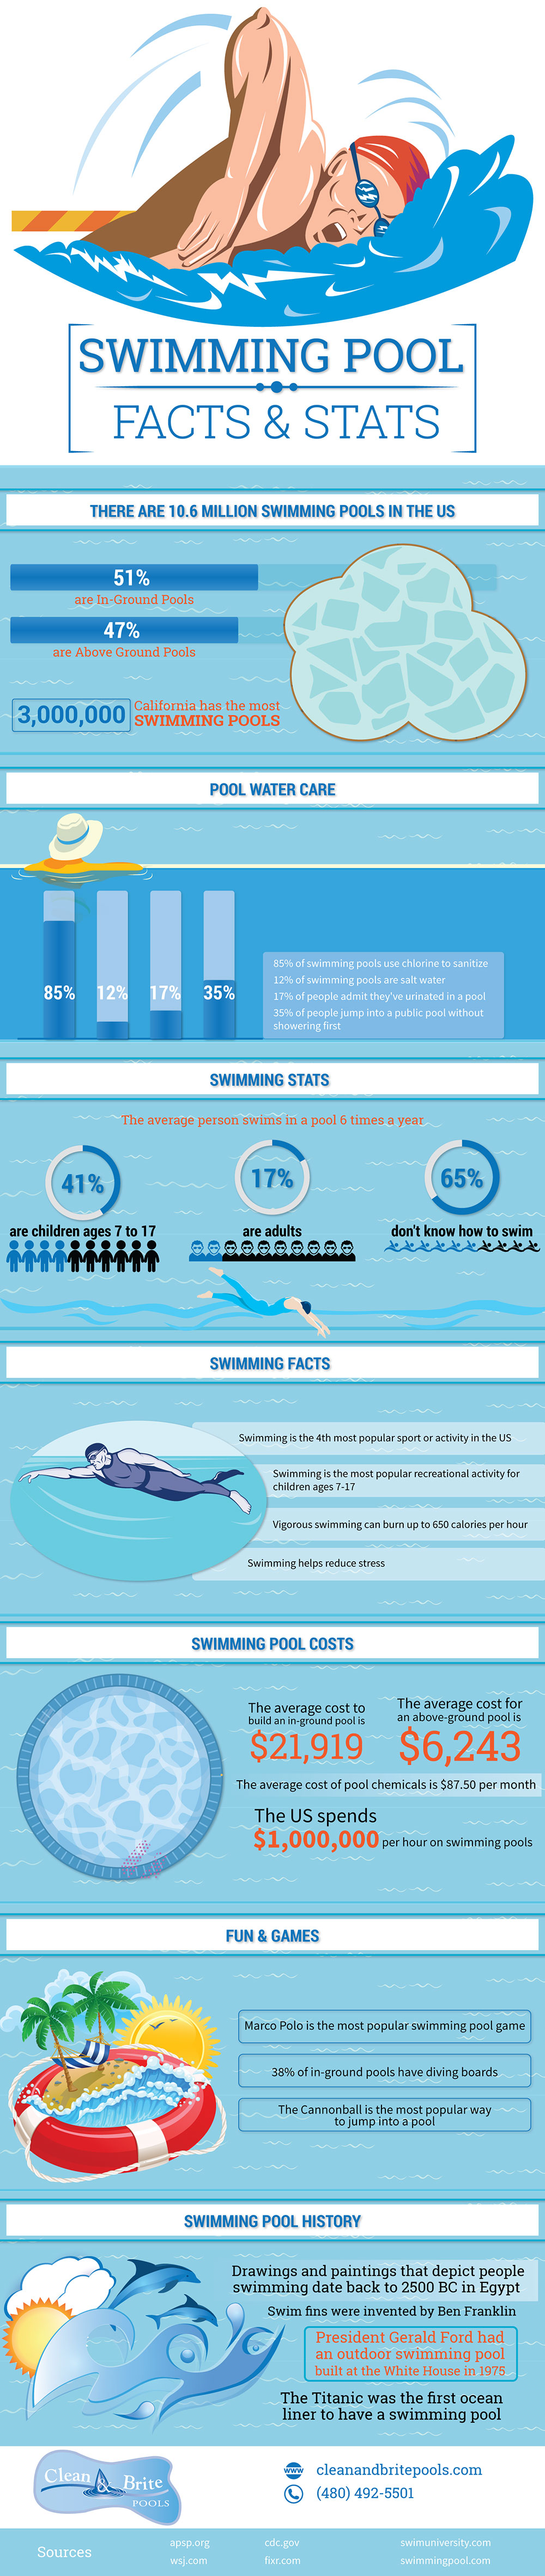 Swimming Pool Facts And Stats Infographic